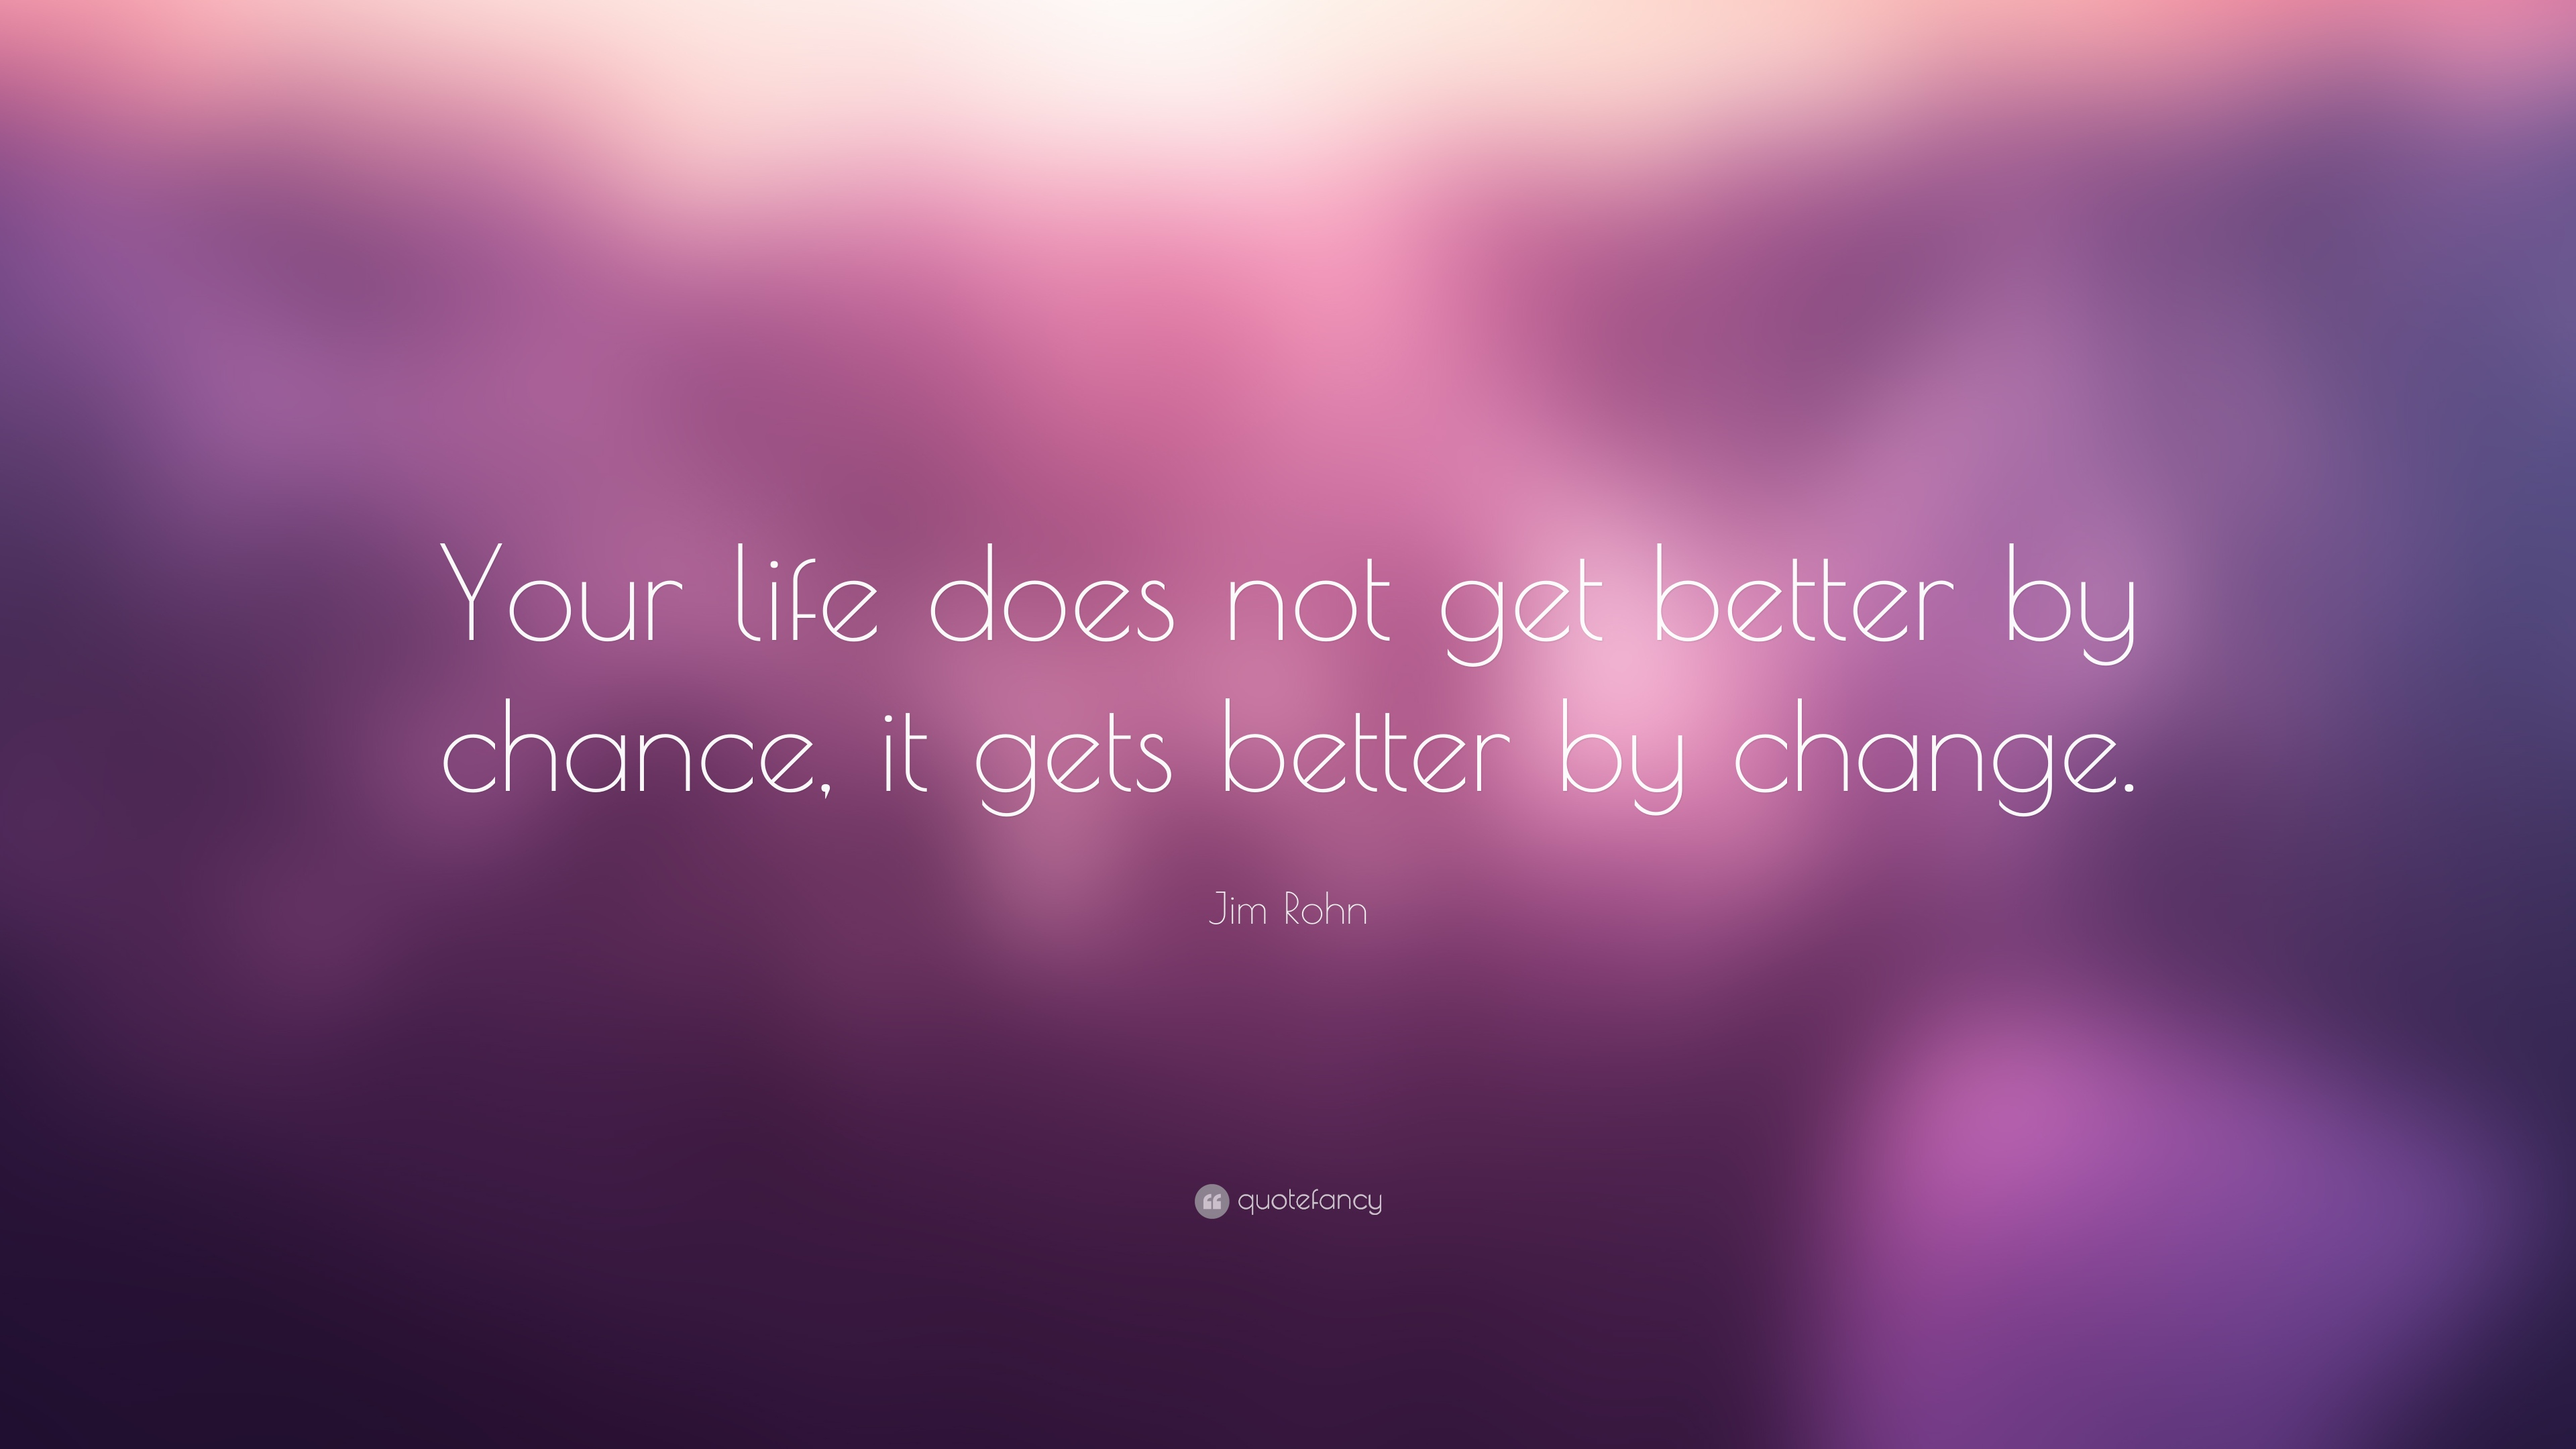 Jim Rohn Quote Your Life Does Not Get Better By Chance It Gets